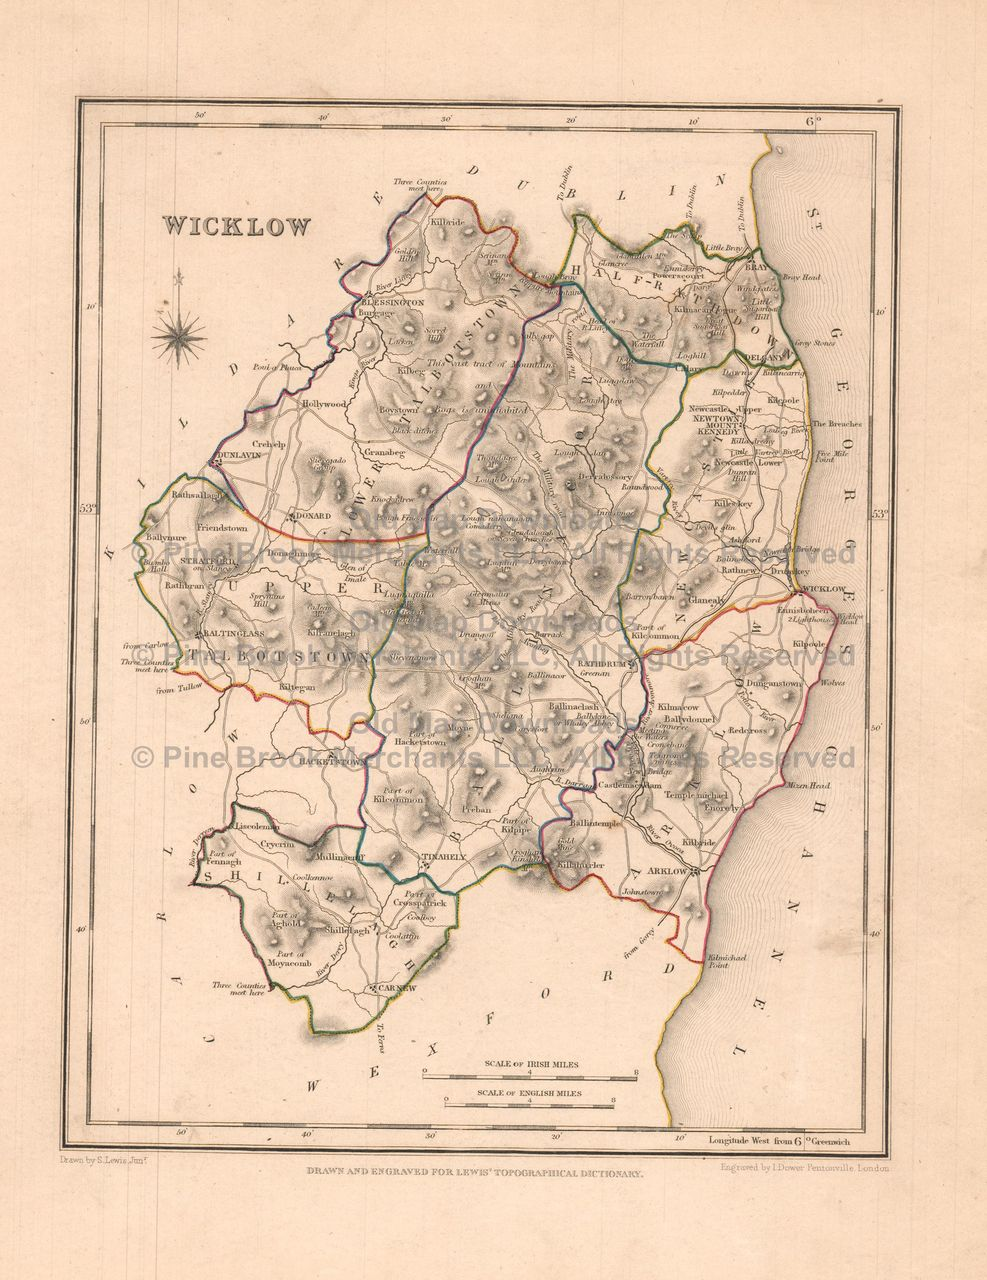 Carlow County Ireland Old Map Lewis Digital Image Scan - Ireland map download